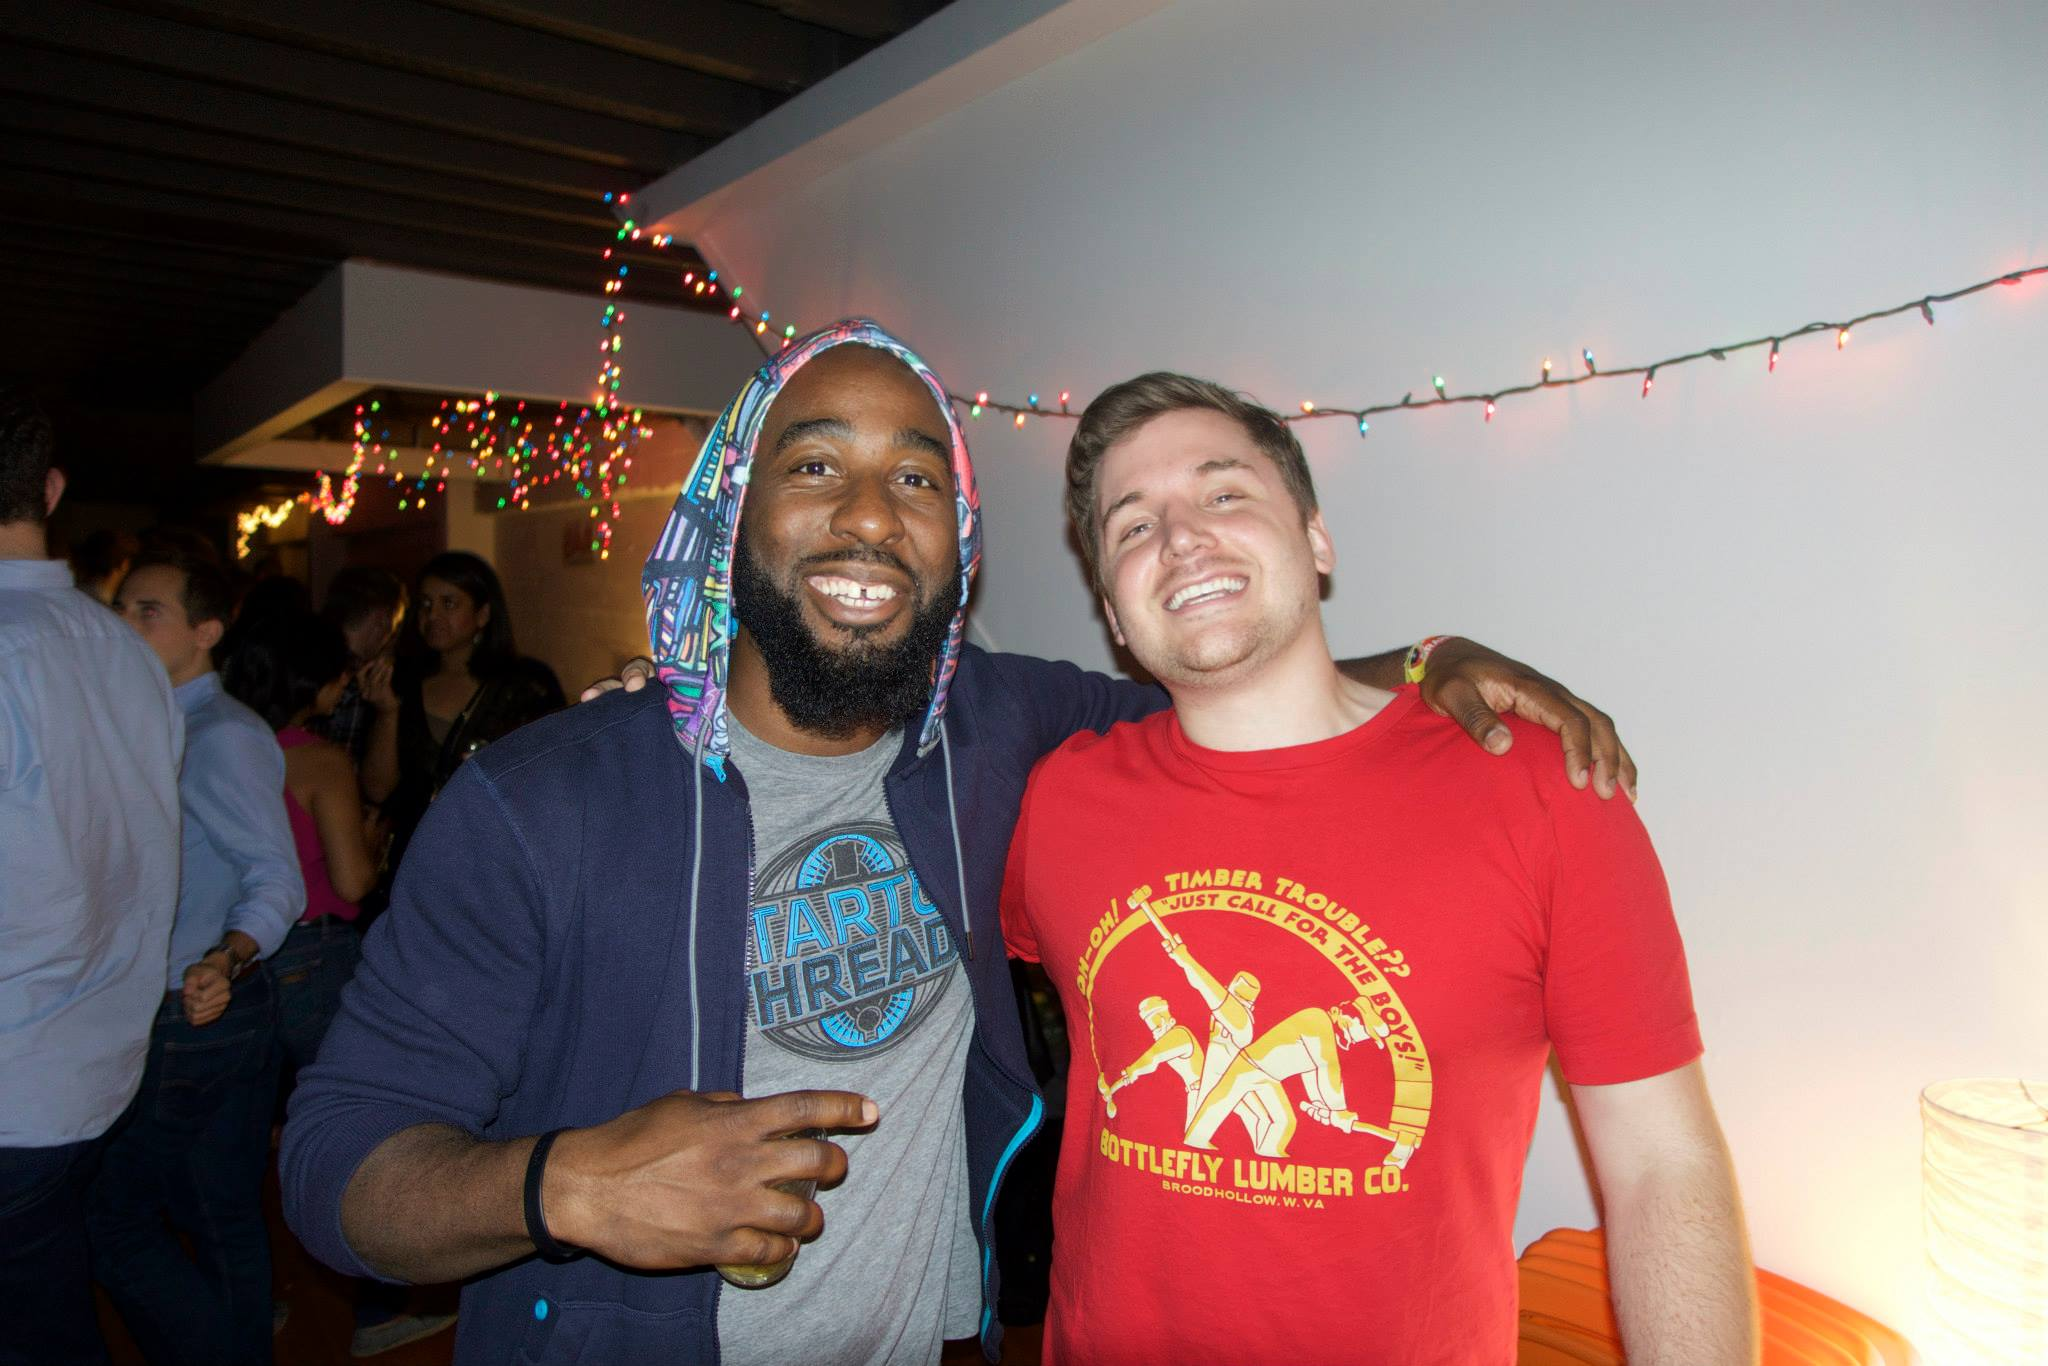 Fun times with Walker Williams, other Teespring Co-founder. One of the few who could understand.